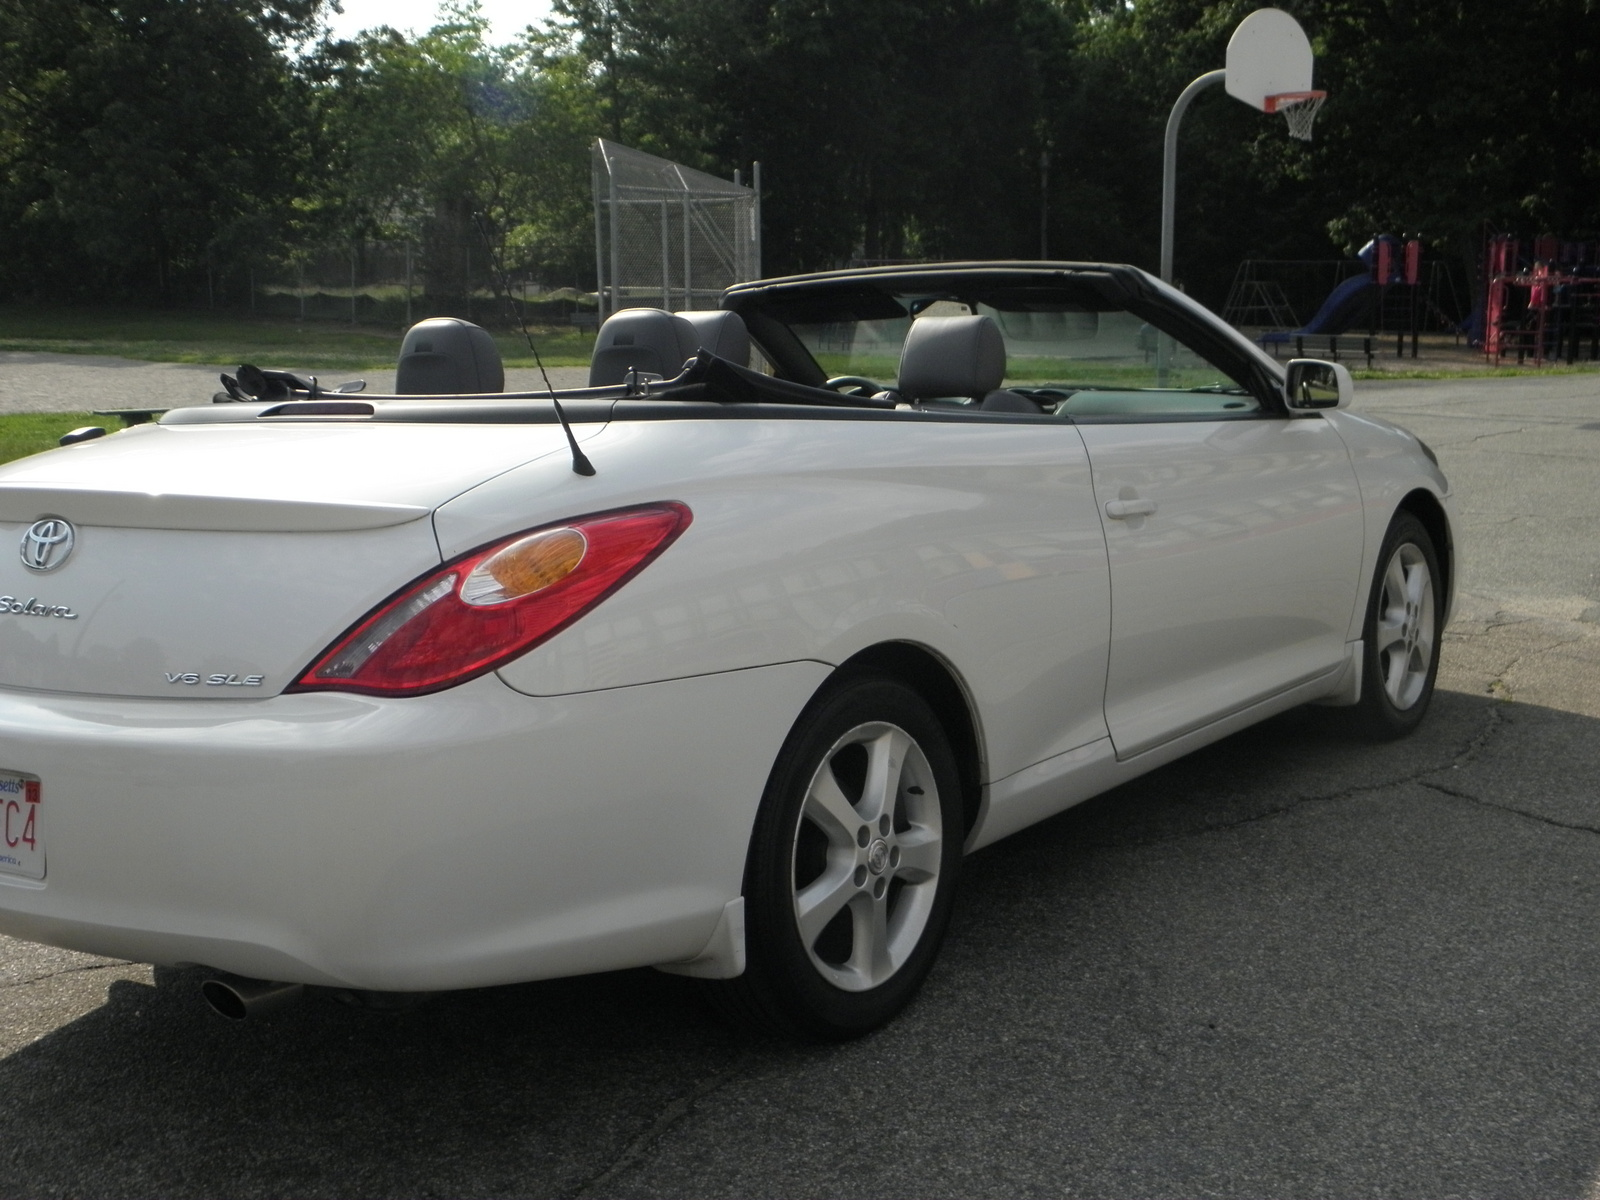 2005 toyota solara ii convertible pictures information. Black Bedroom Furniture Sets. Home Design Ideas